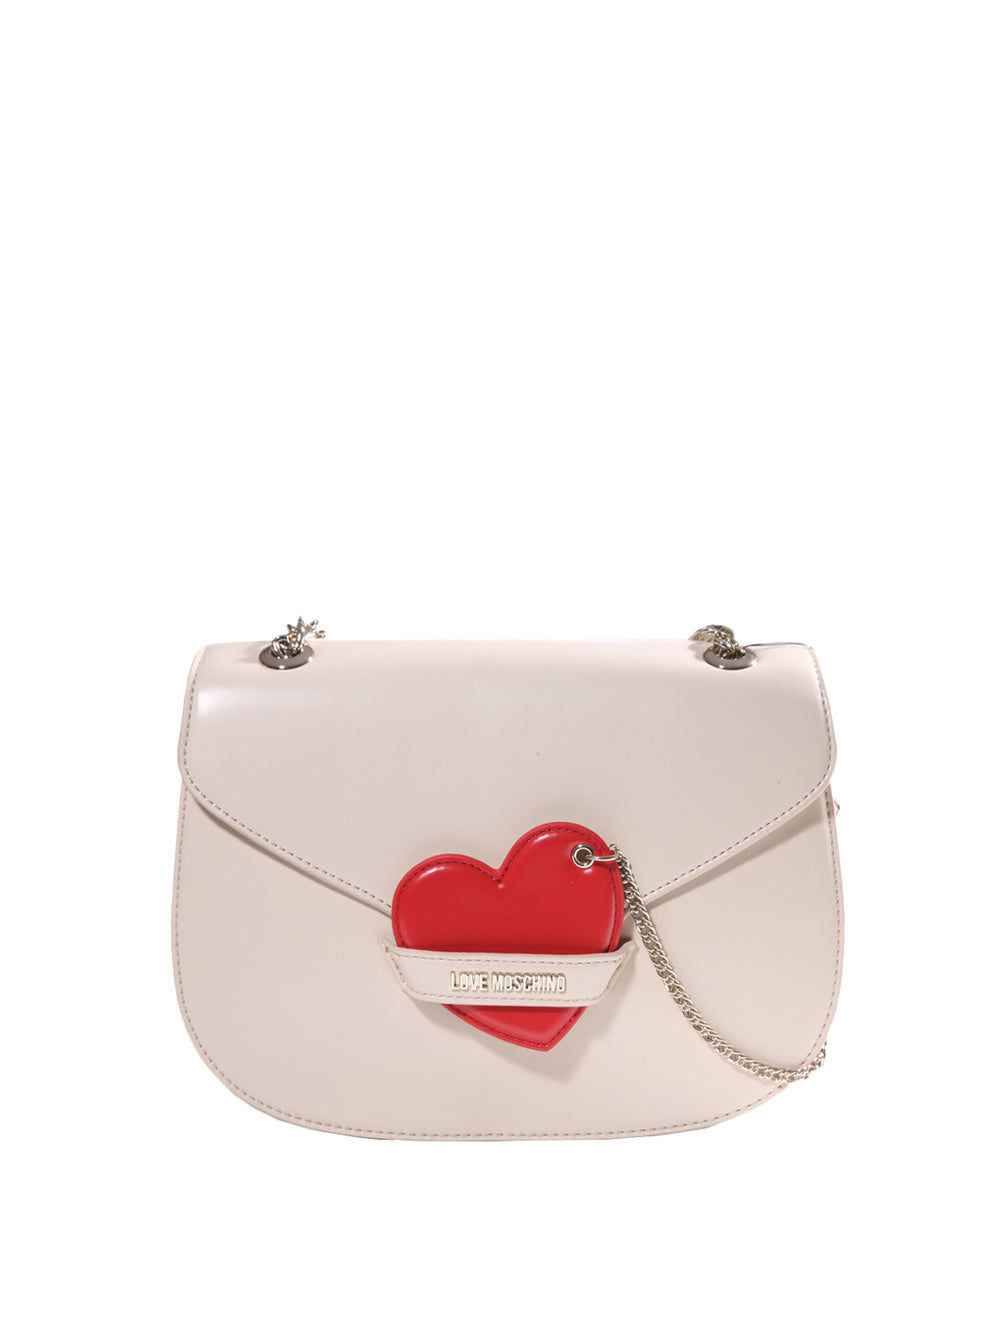 Satin Argento Bag, LOVE MOSCHINO - elilhaam.com